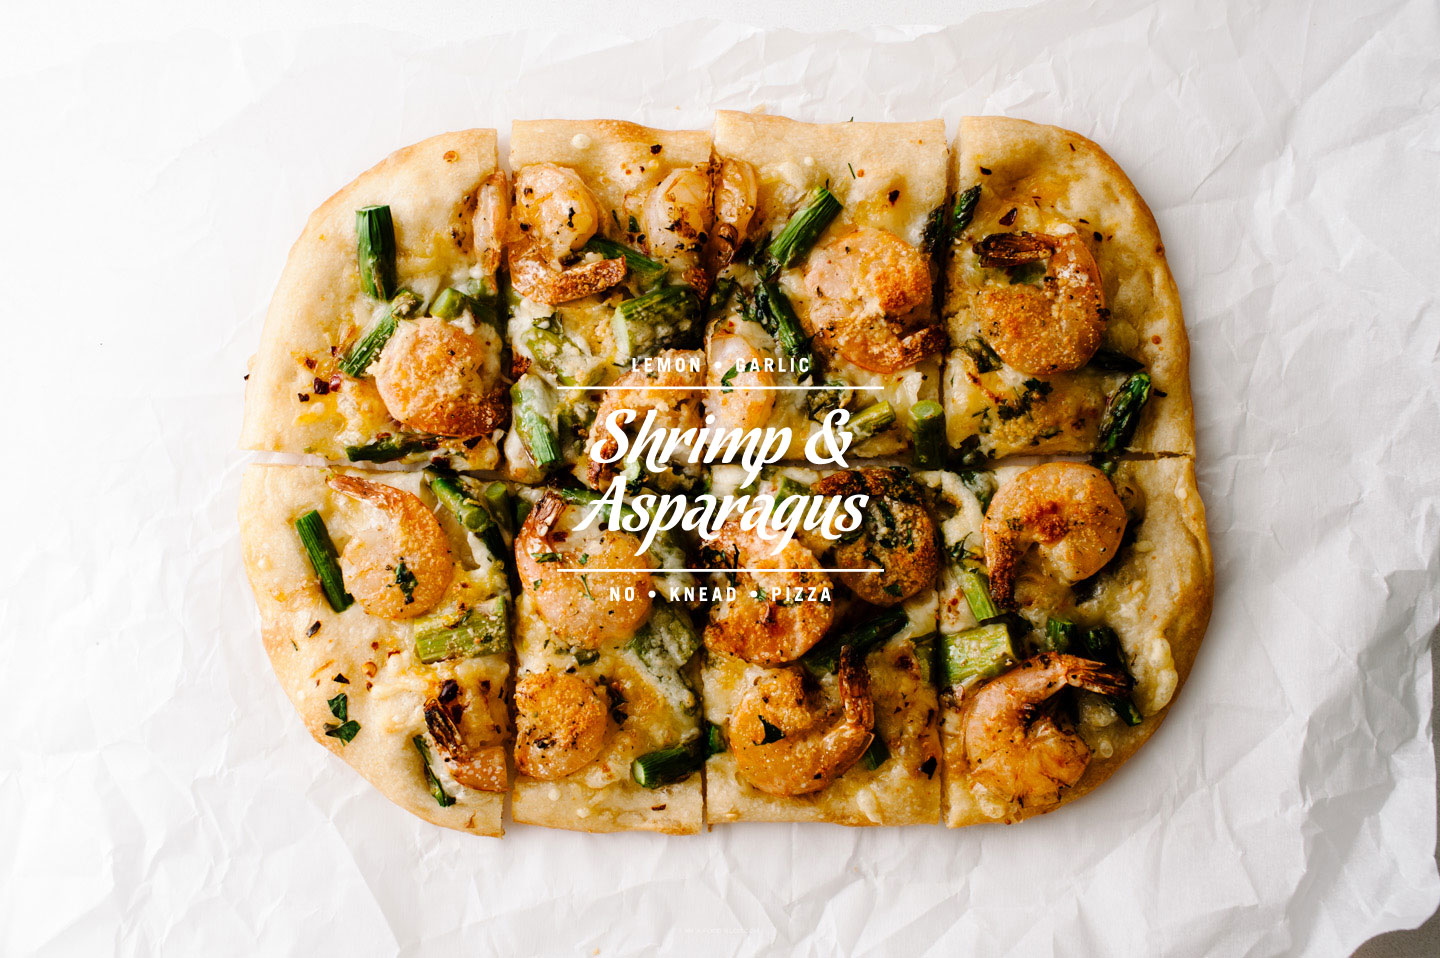 shrimp asparagus pizza recipe - www.iamafoodblog.com